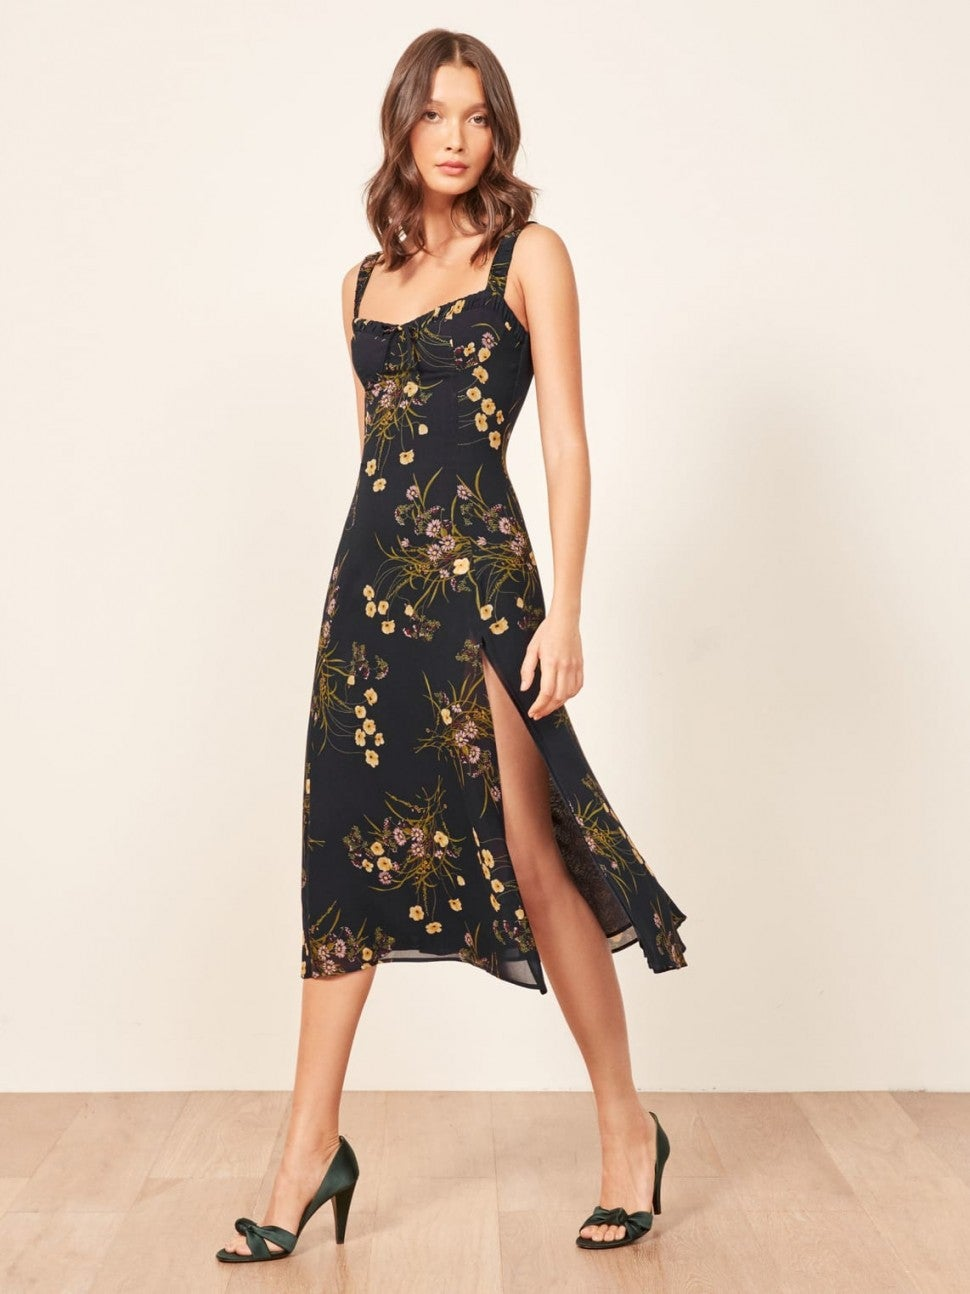 Reformation printed dress